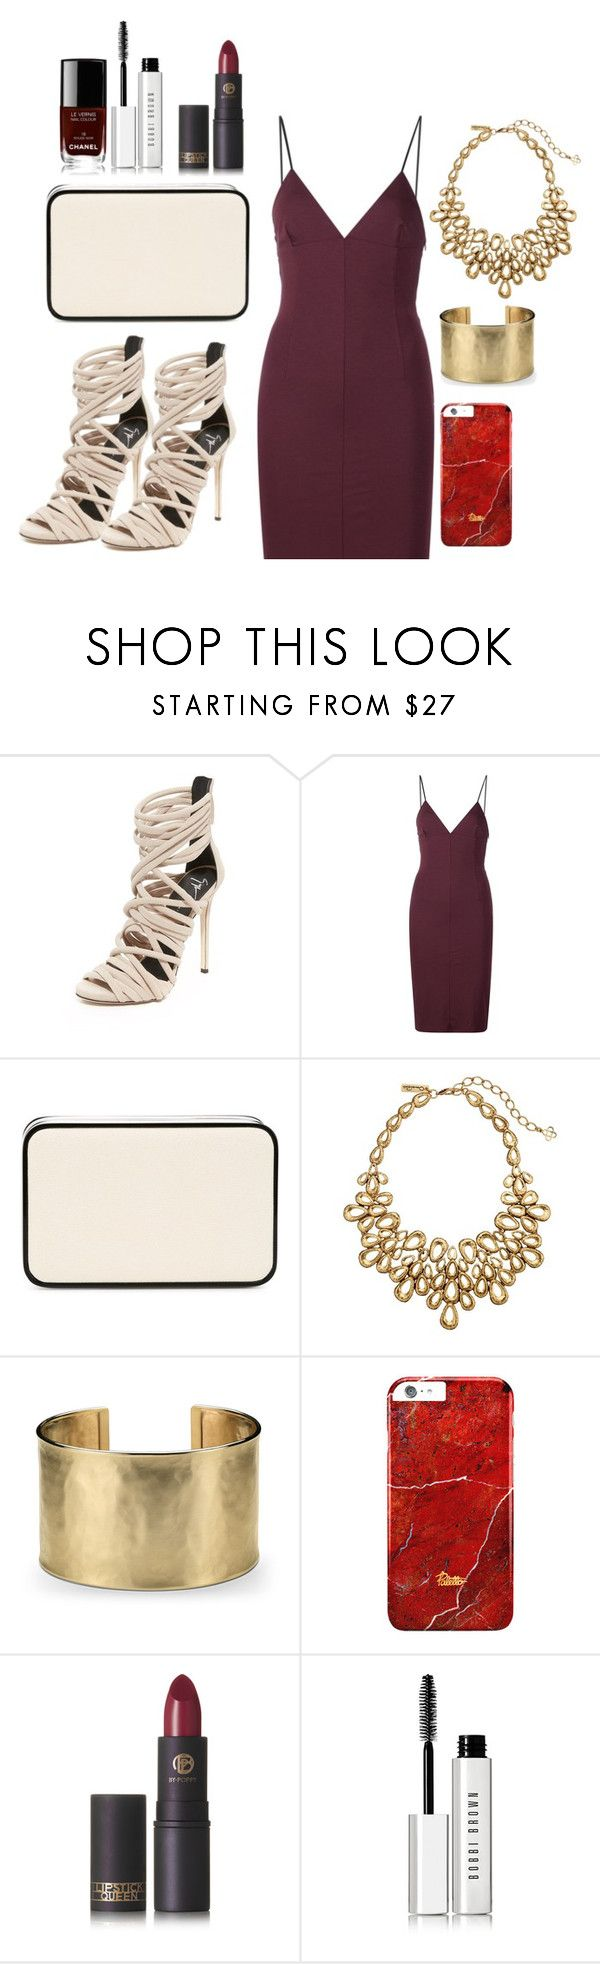 """""""Weekend Wedding in Southhampton: Rehearsal Dinner"""" by design360 ❤ liked on Polyvore featuring Giuseppe Zanotti, T By Alexander Wang, Valextra, Oscar de la Renta, Blue Nile, Lipstick Queen, Bobbi Brown Cosmetics and Chanel"""